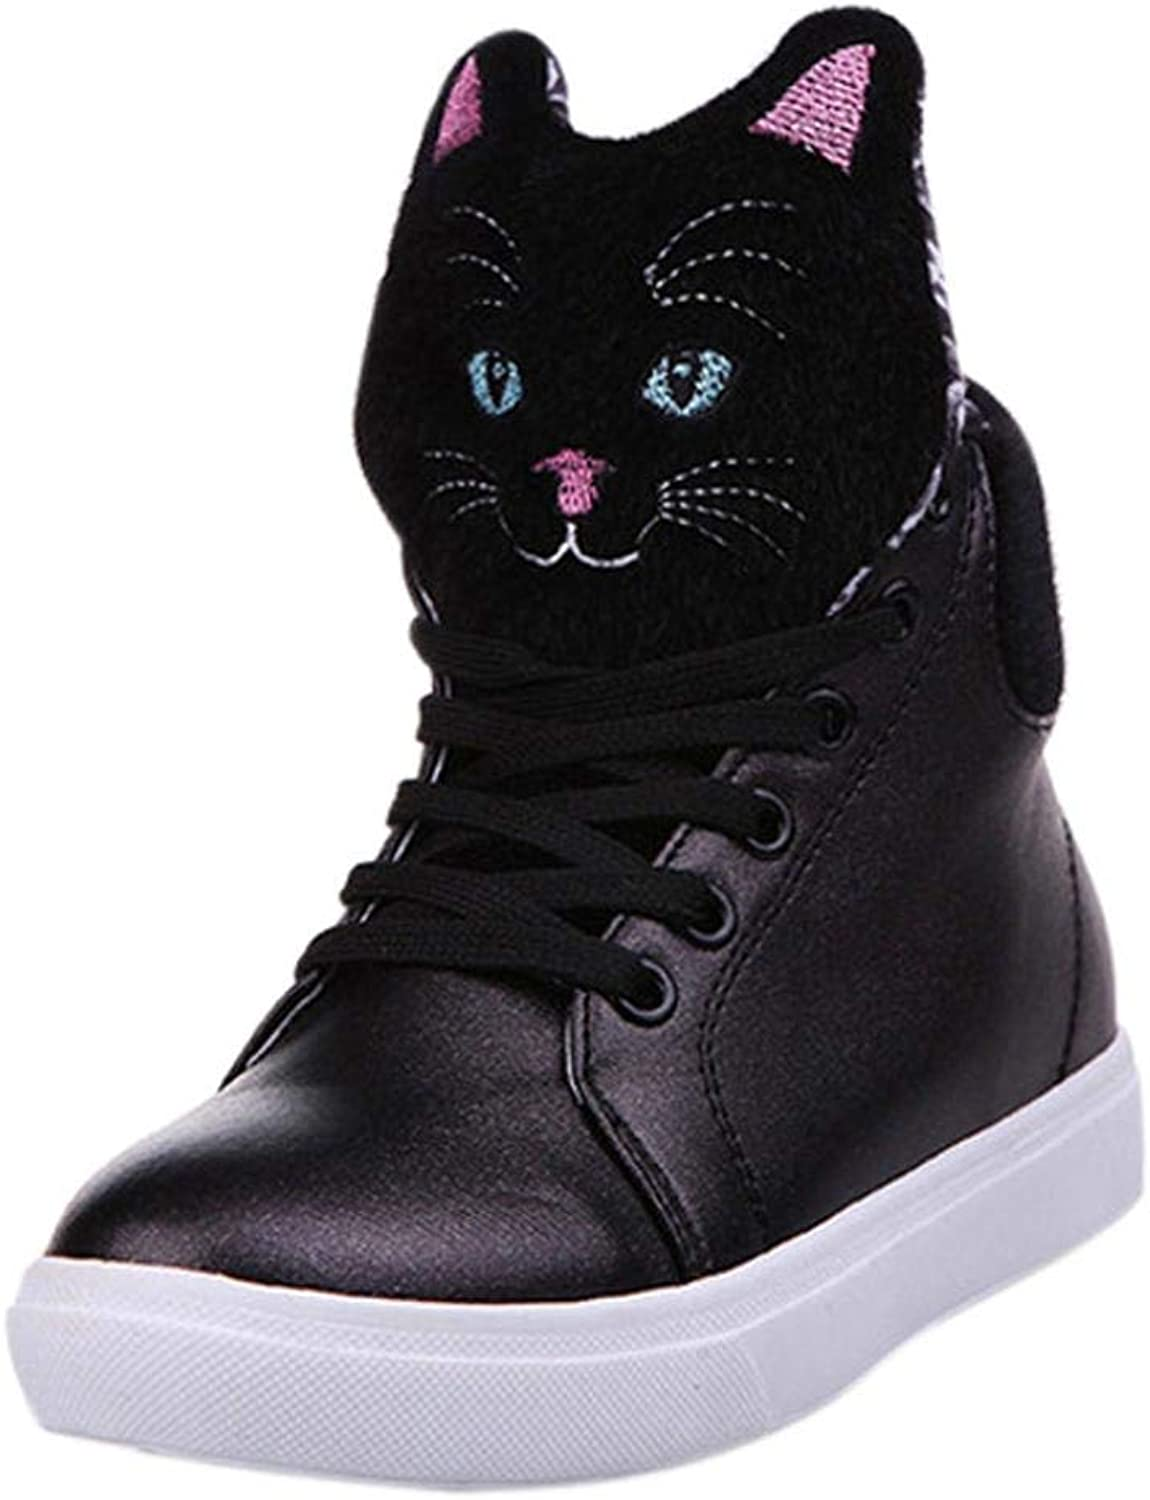 JaHGDU Autumn Cartoon Cat Head Flat Women Ankle Boots Casual Lace Up Ladies Sports Casual Training Fashion Daily Wild Comfort Stylish shoes